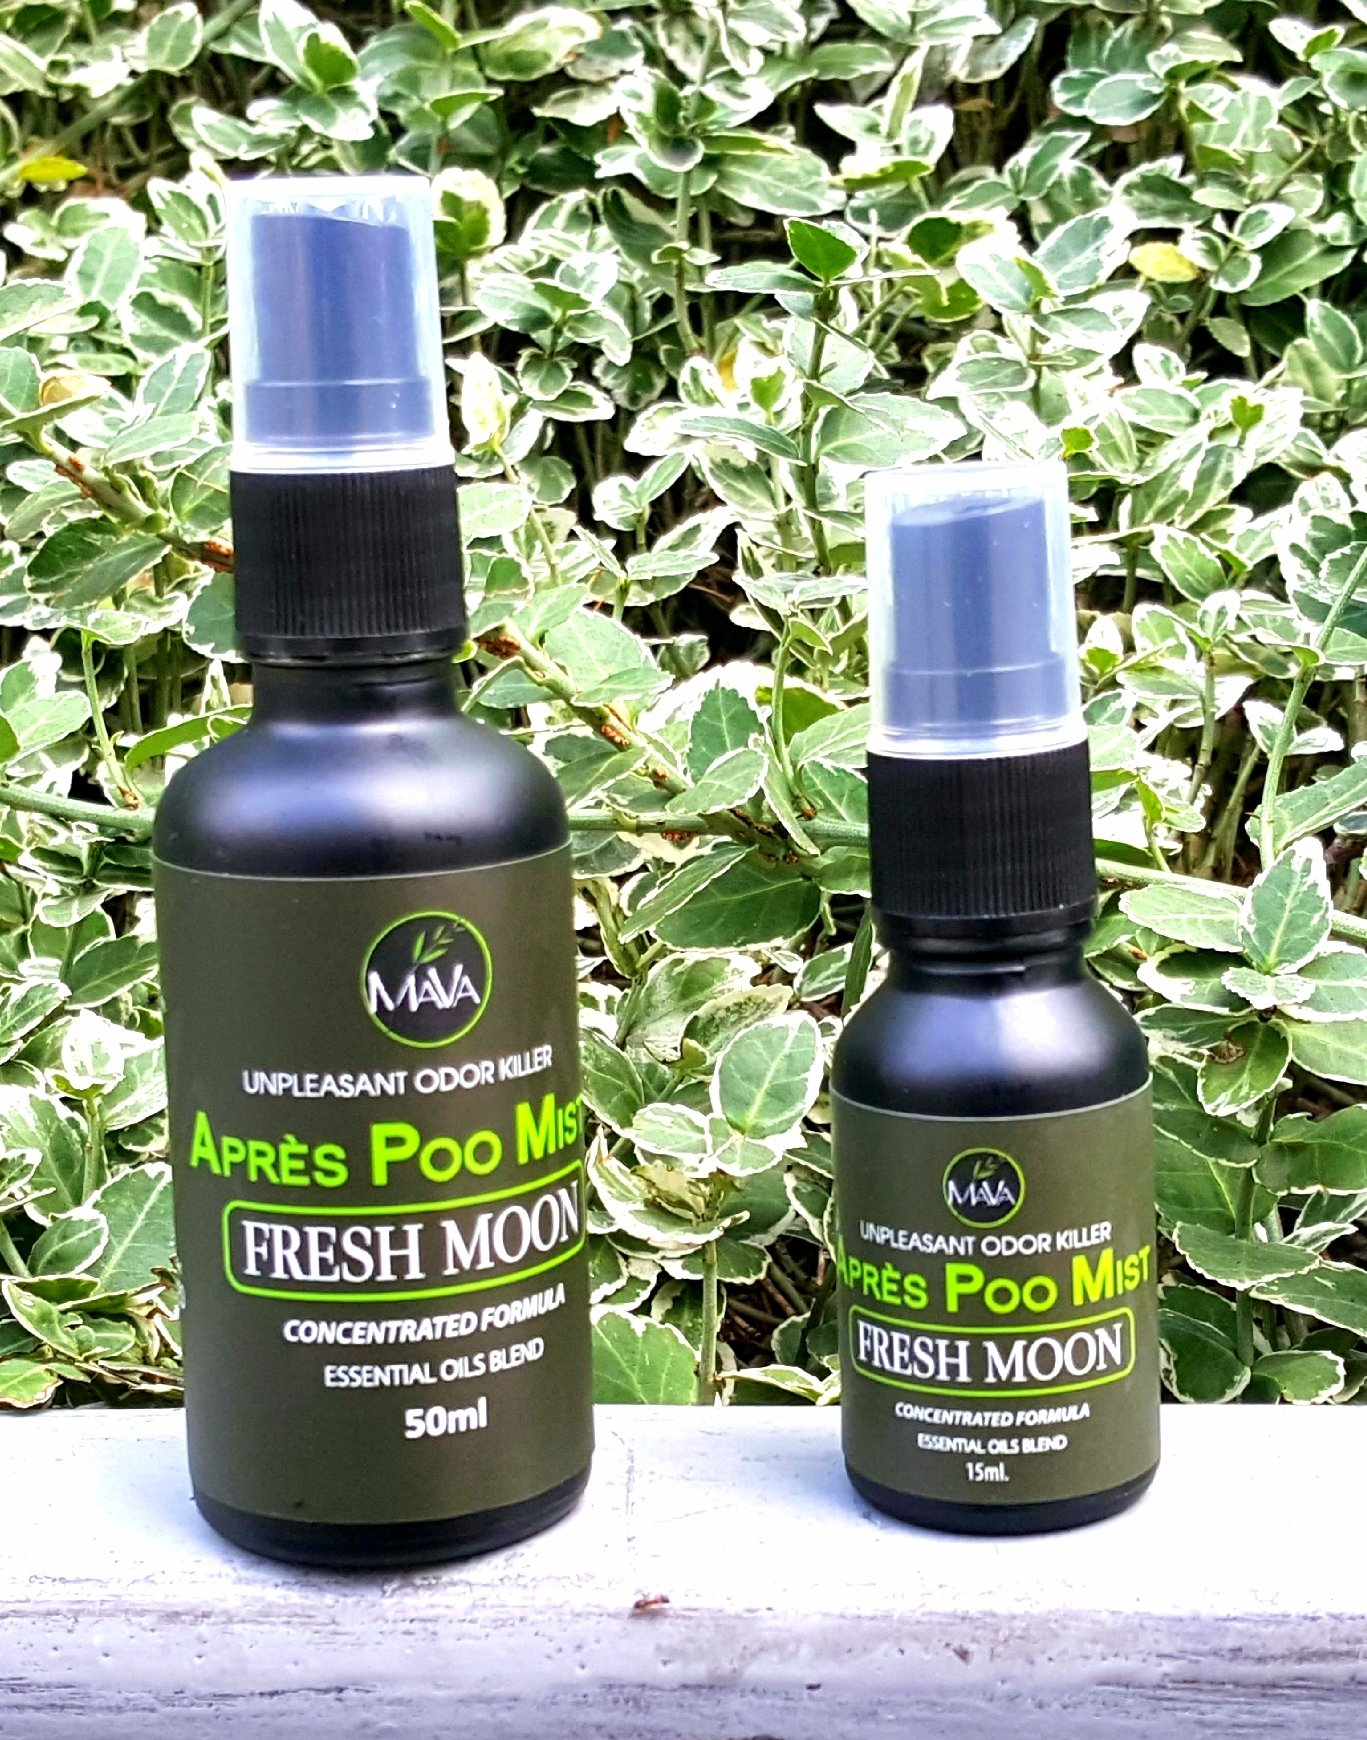 Après Poo Mist, Before & After You Go Spray, 340 uses FRESH MOON (Citrus Scent) (50 ml) by Mava Products USA (Image #6)